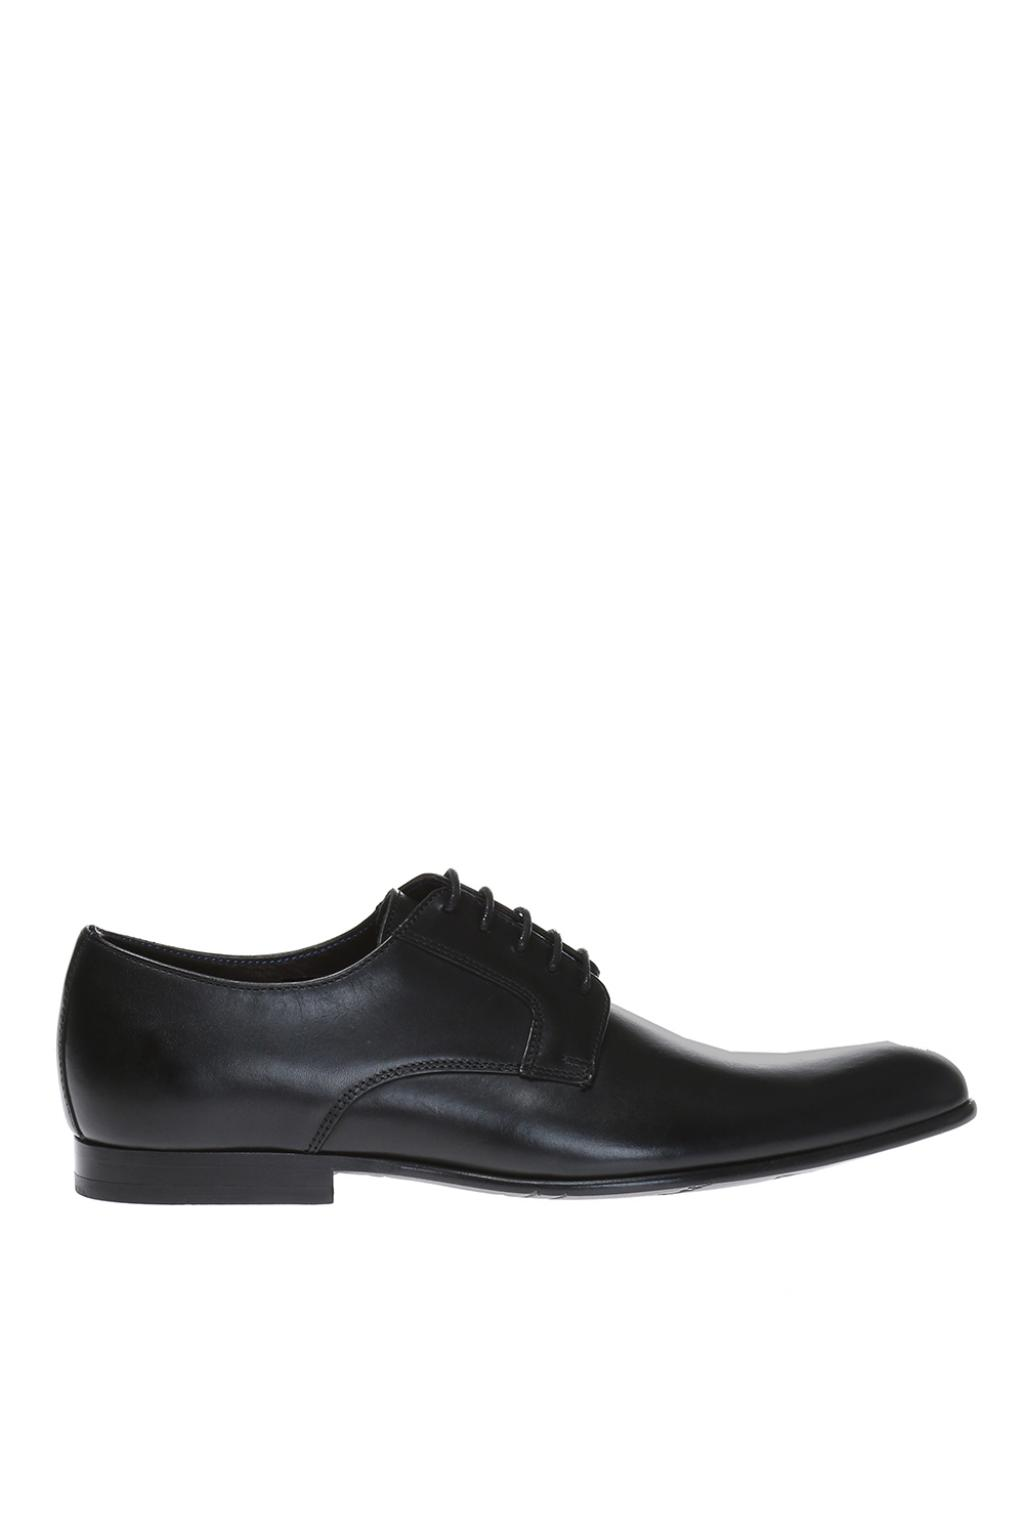 PS Paul Smith Buty 'Gould' typu 'derby'